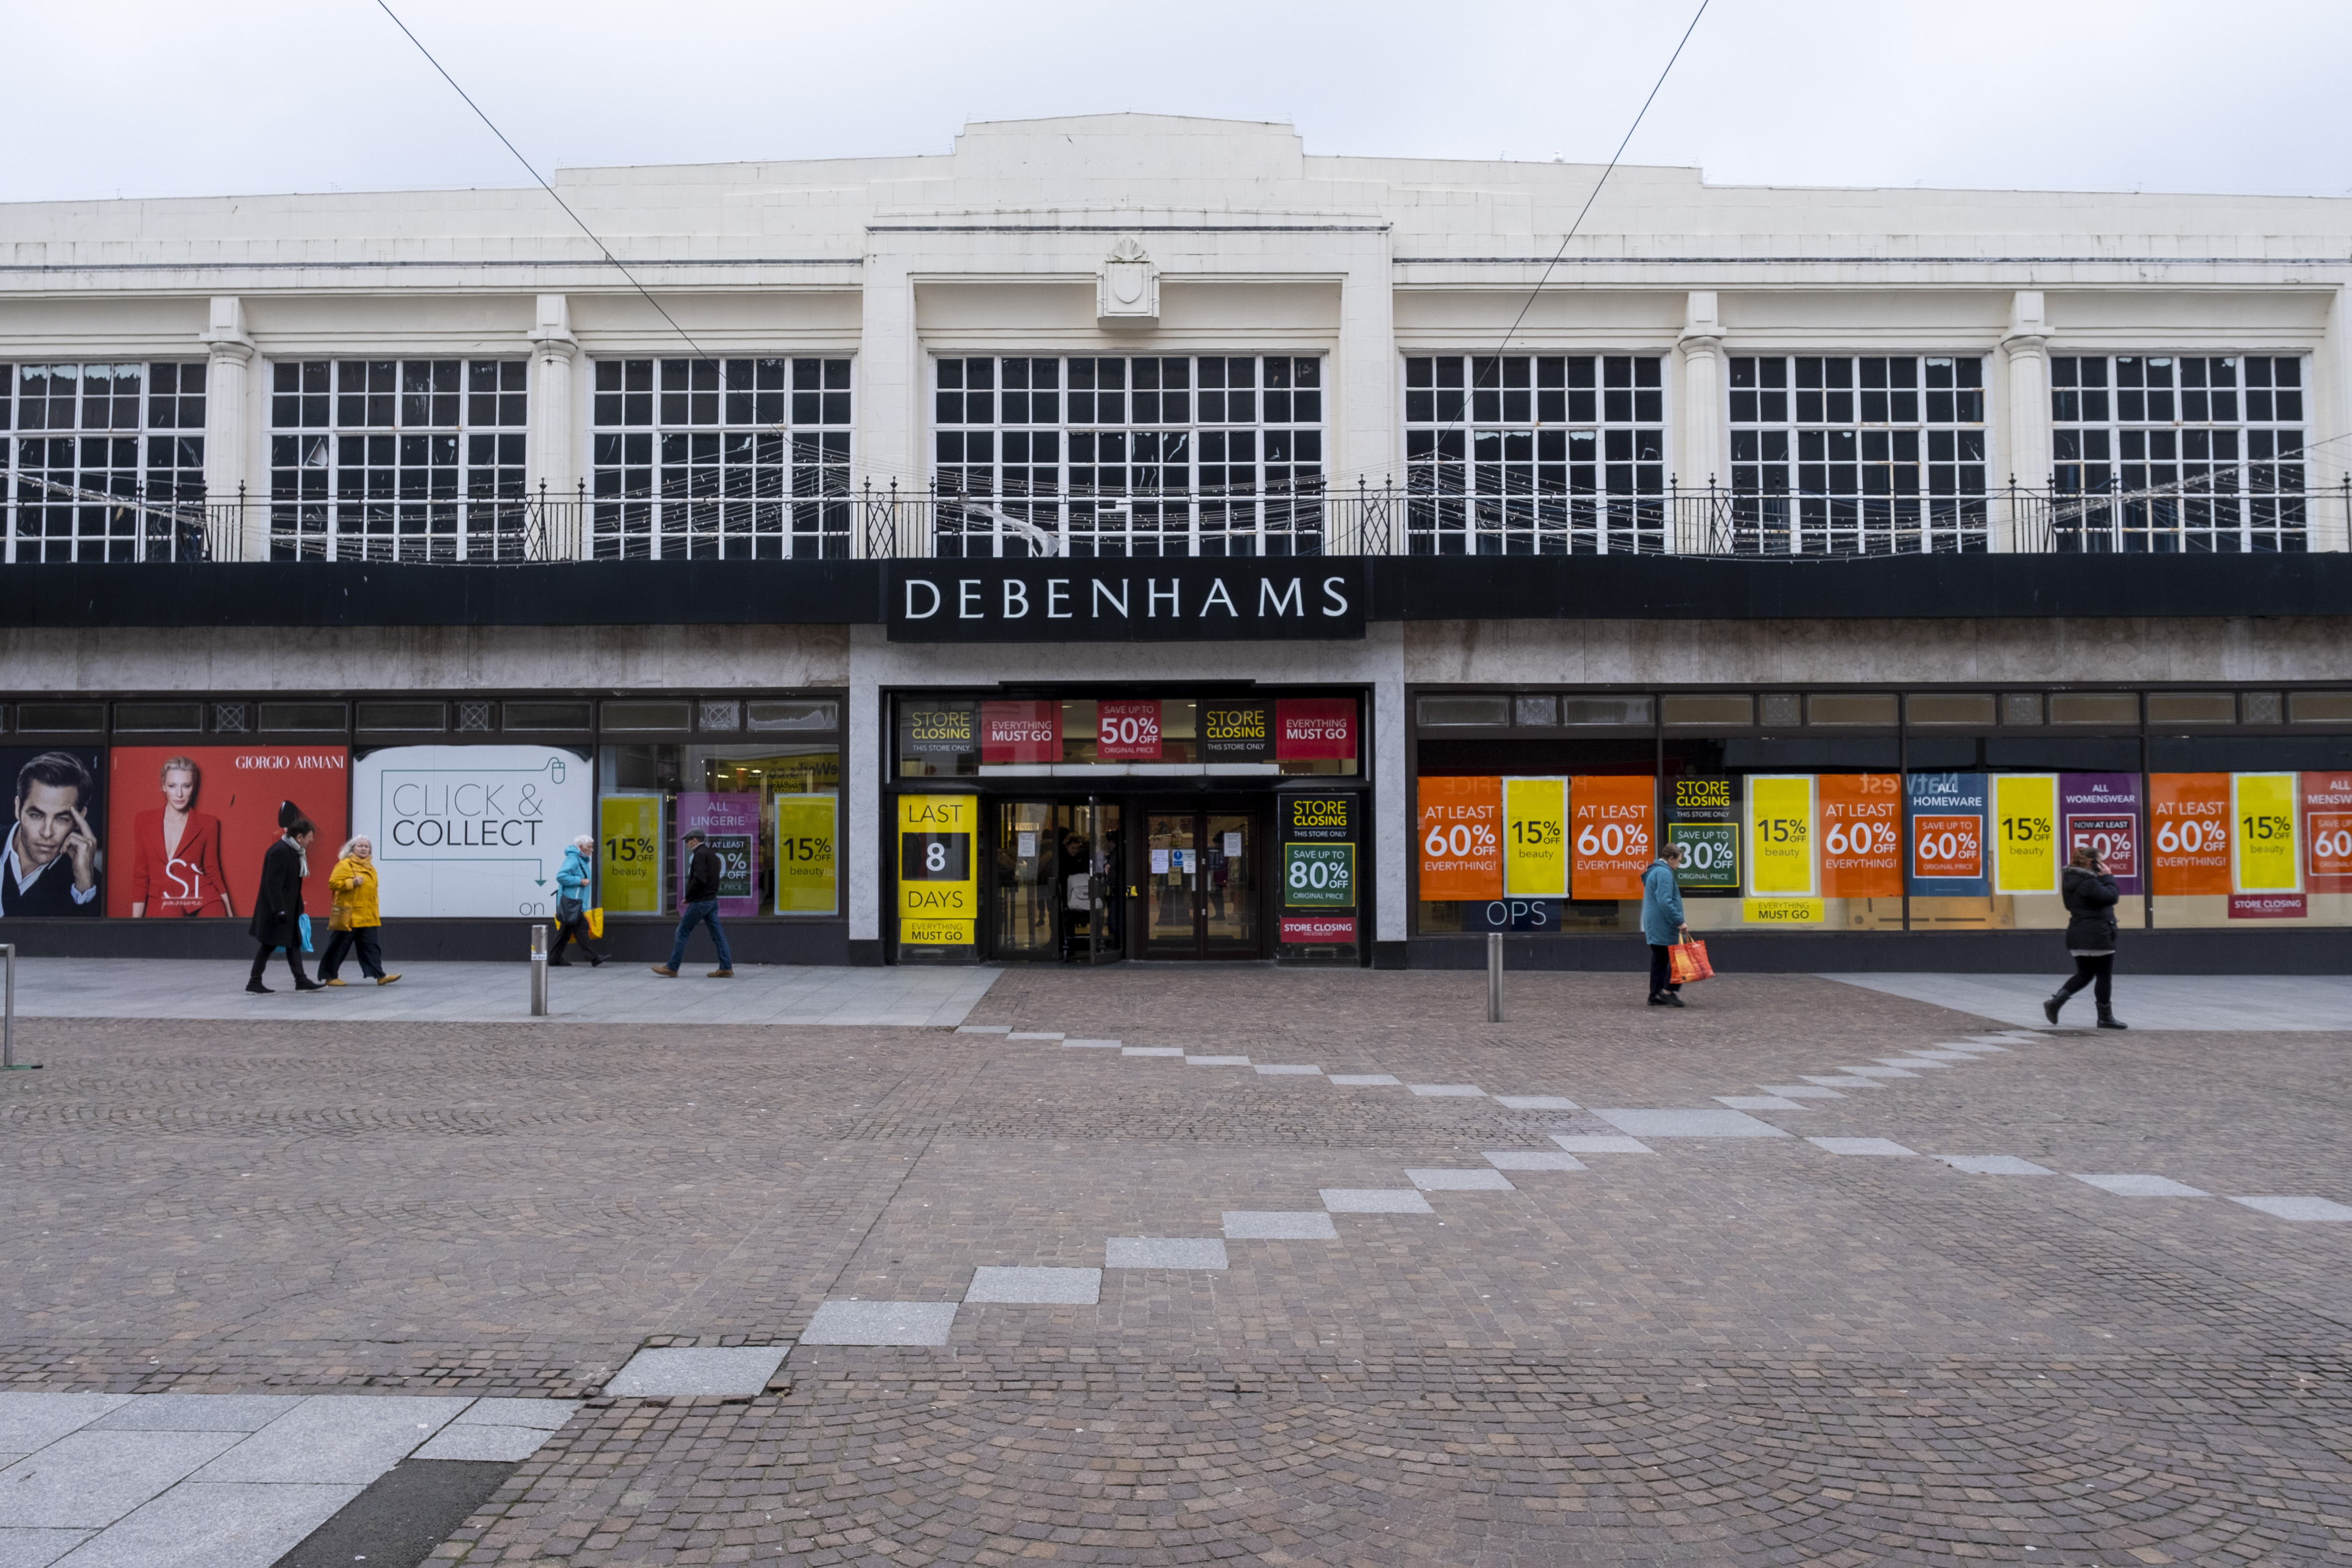 The Folkestone Debenhams store in the final few days of the Everything Must Go sale before closing down on 13th Jauary 2020 in Folkestone, Kent. United Kingdom. The company announced the closure of 19 stores across the UK after going into administration in 2019.  (photo by Andrew Aitchison / In pictures via Getty Images)